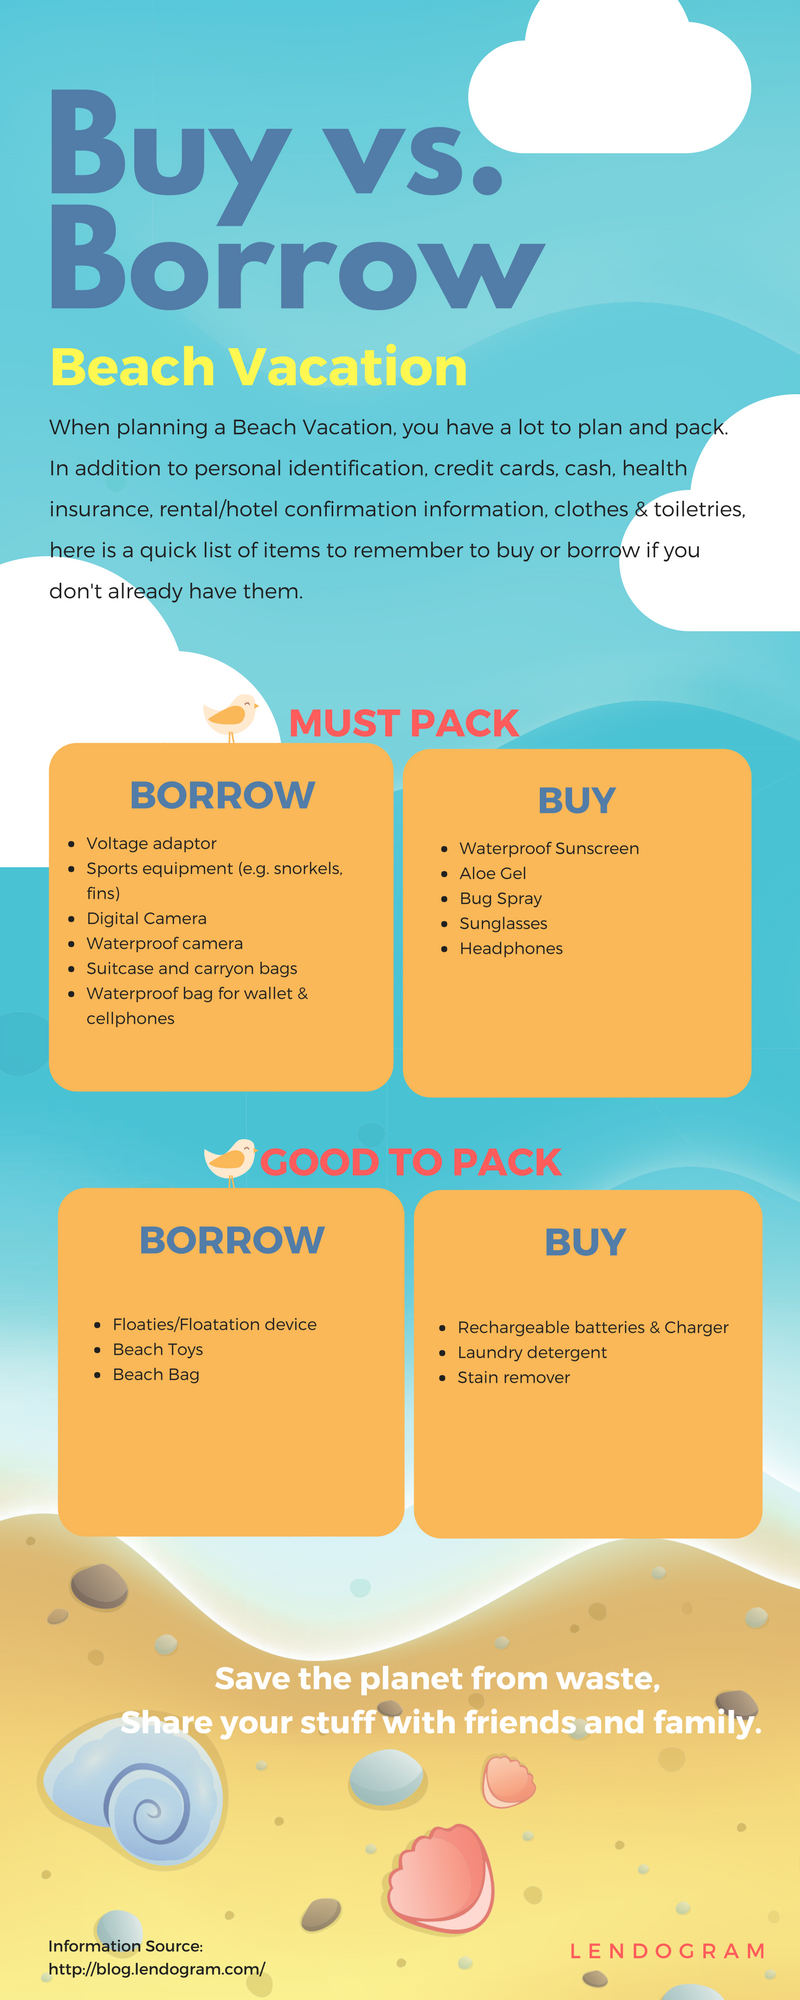 How to borrow money to buy a house 28 images no more for Best way to borrow money to buy land